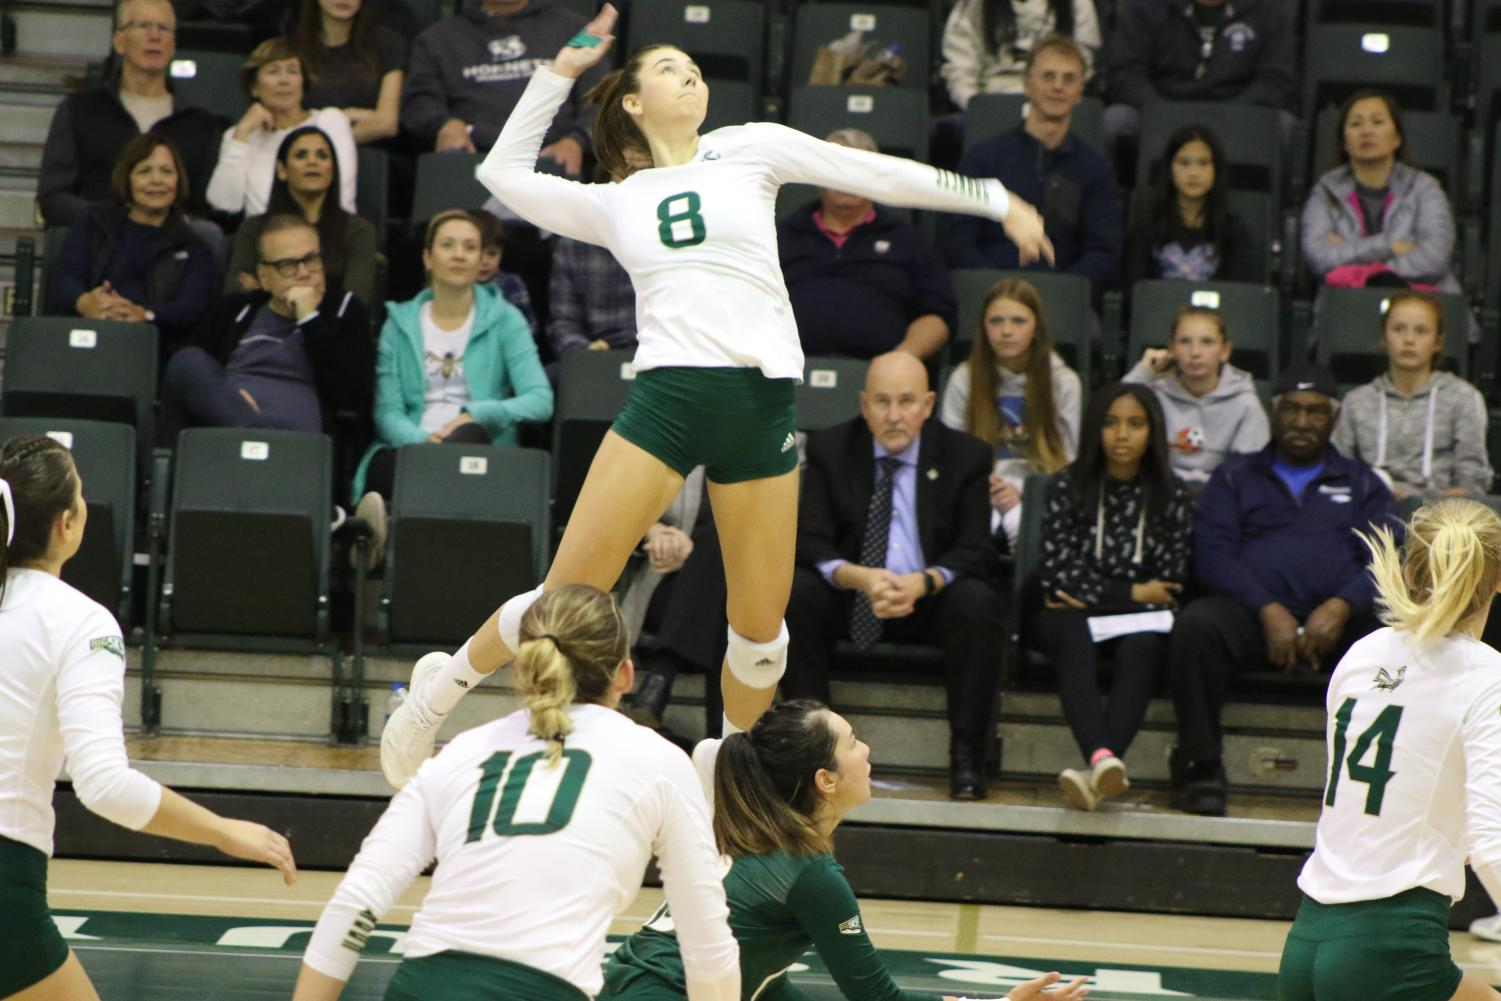 Sac State senior outside hitter Sarah Davis spikes the ball against Weber State on Thursday, Nov. 14 at The Nest. Sac State lost to the Wildcats in three sets.